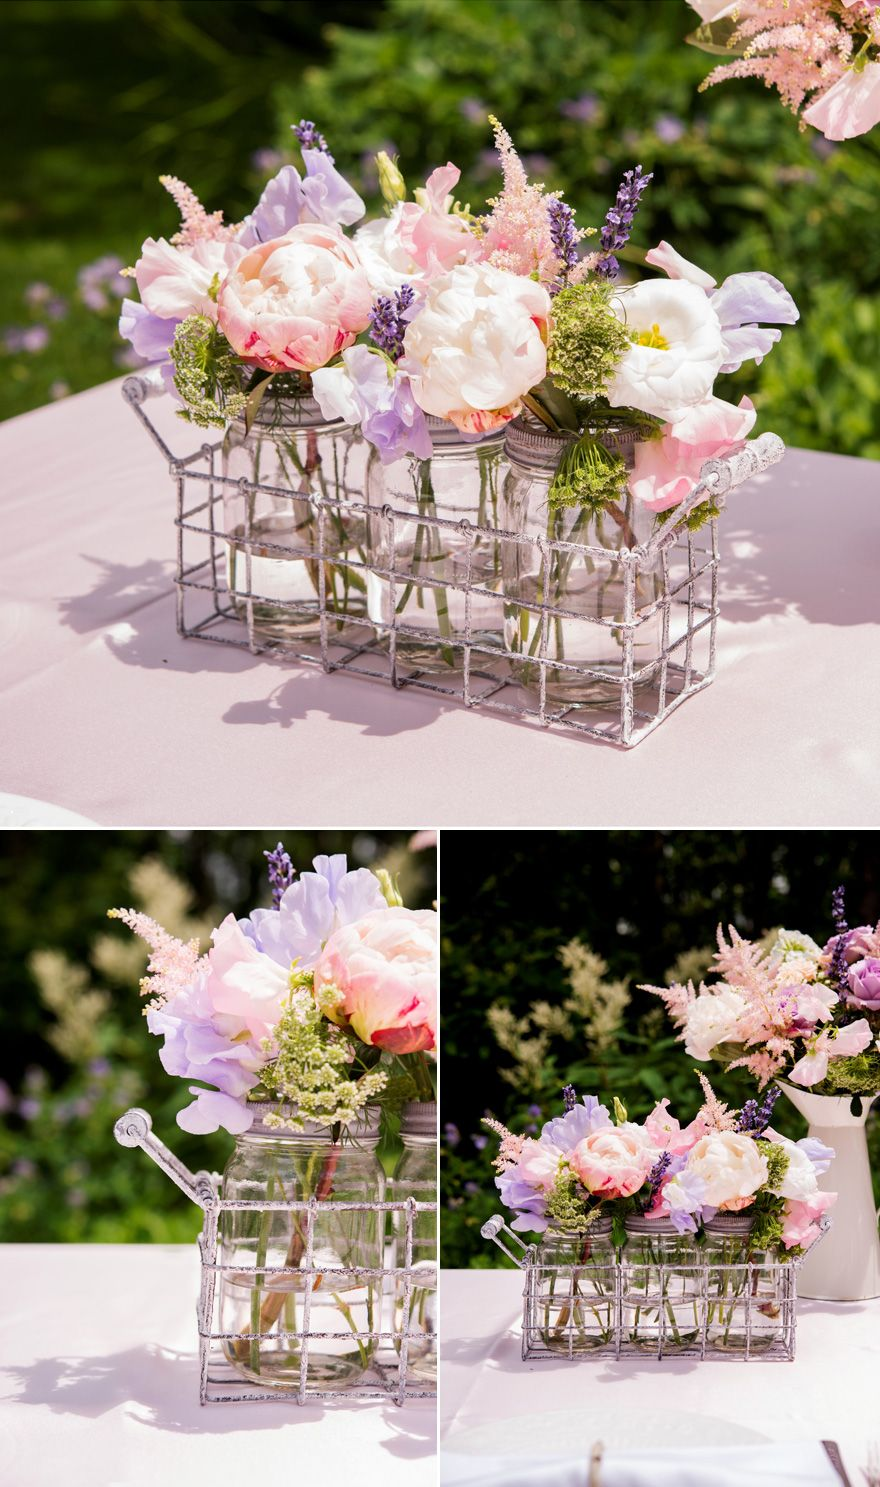 Wedding decoration ideas garden party  Youull Be Spoilt For Choice with These  Stunning DIY Centrepieces